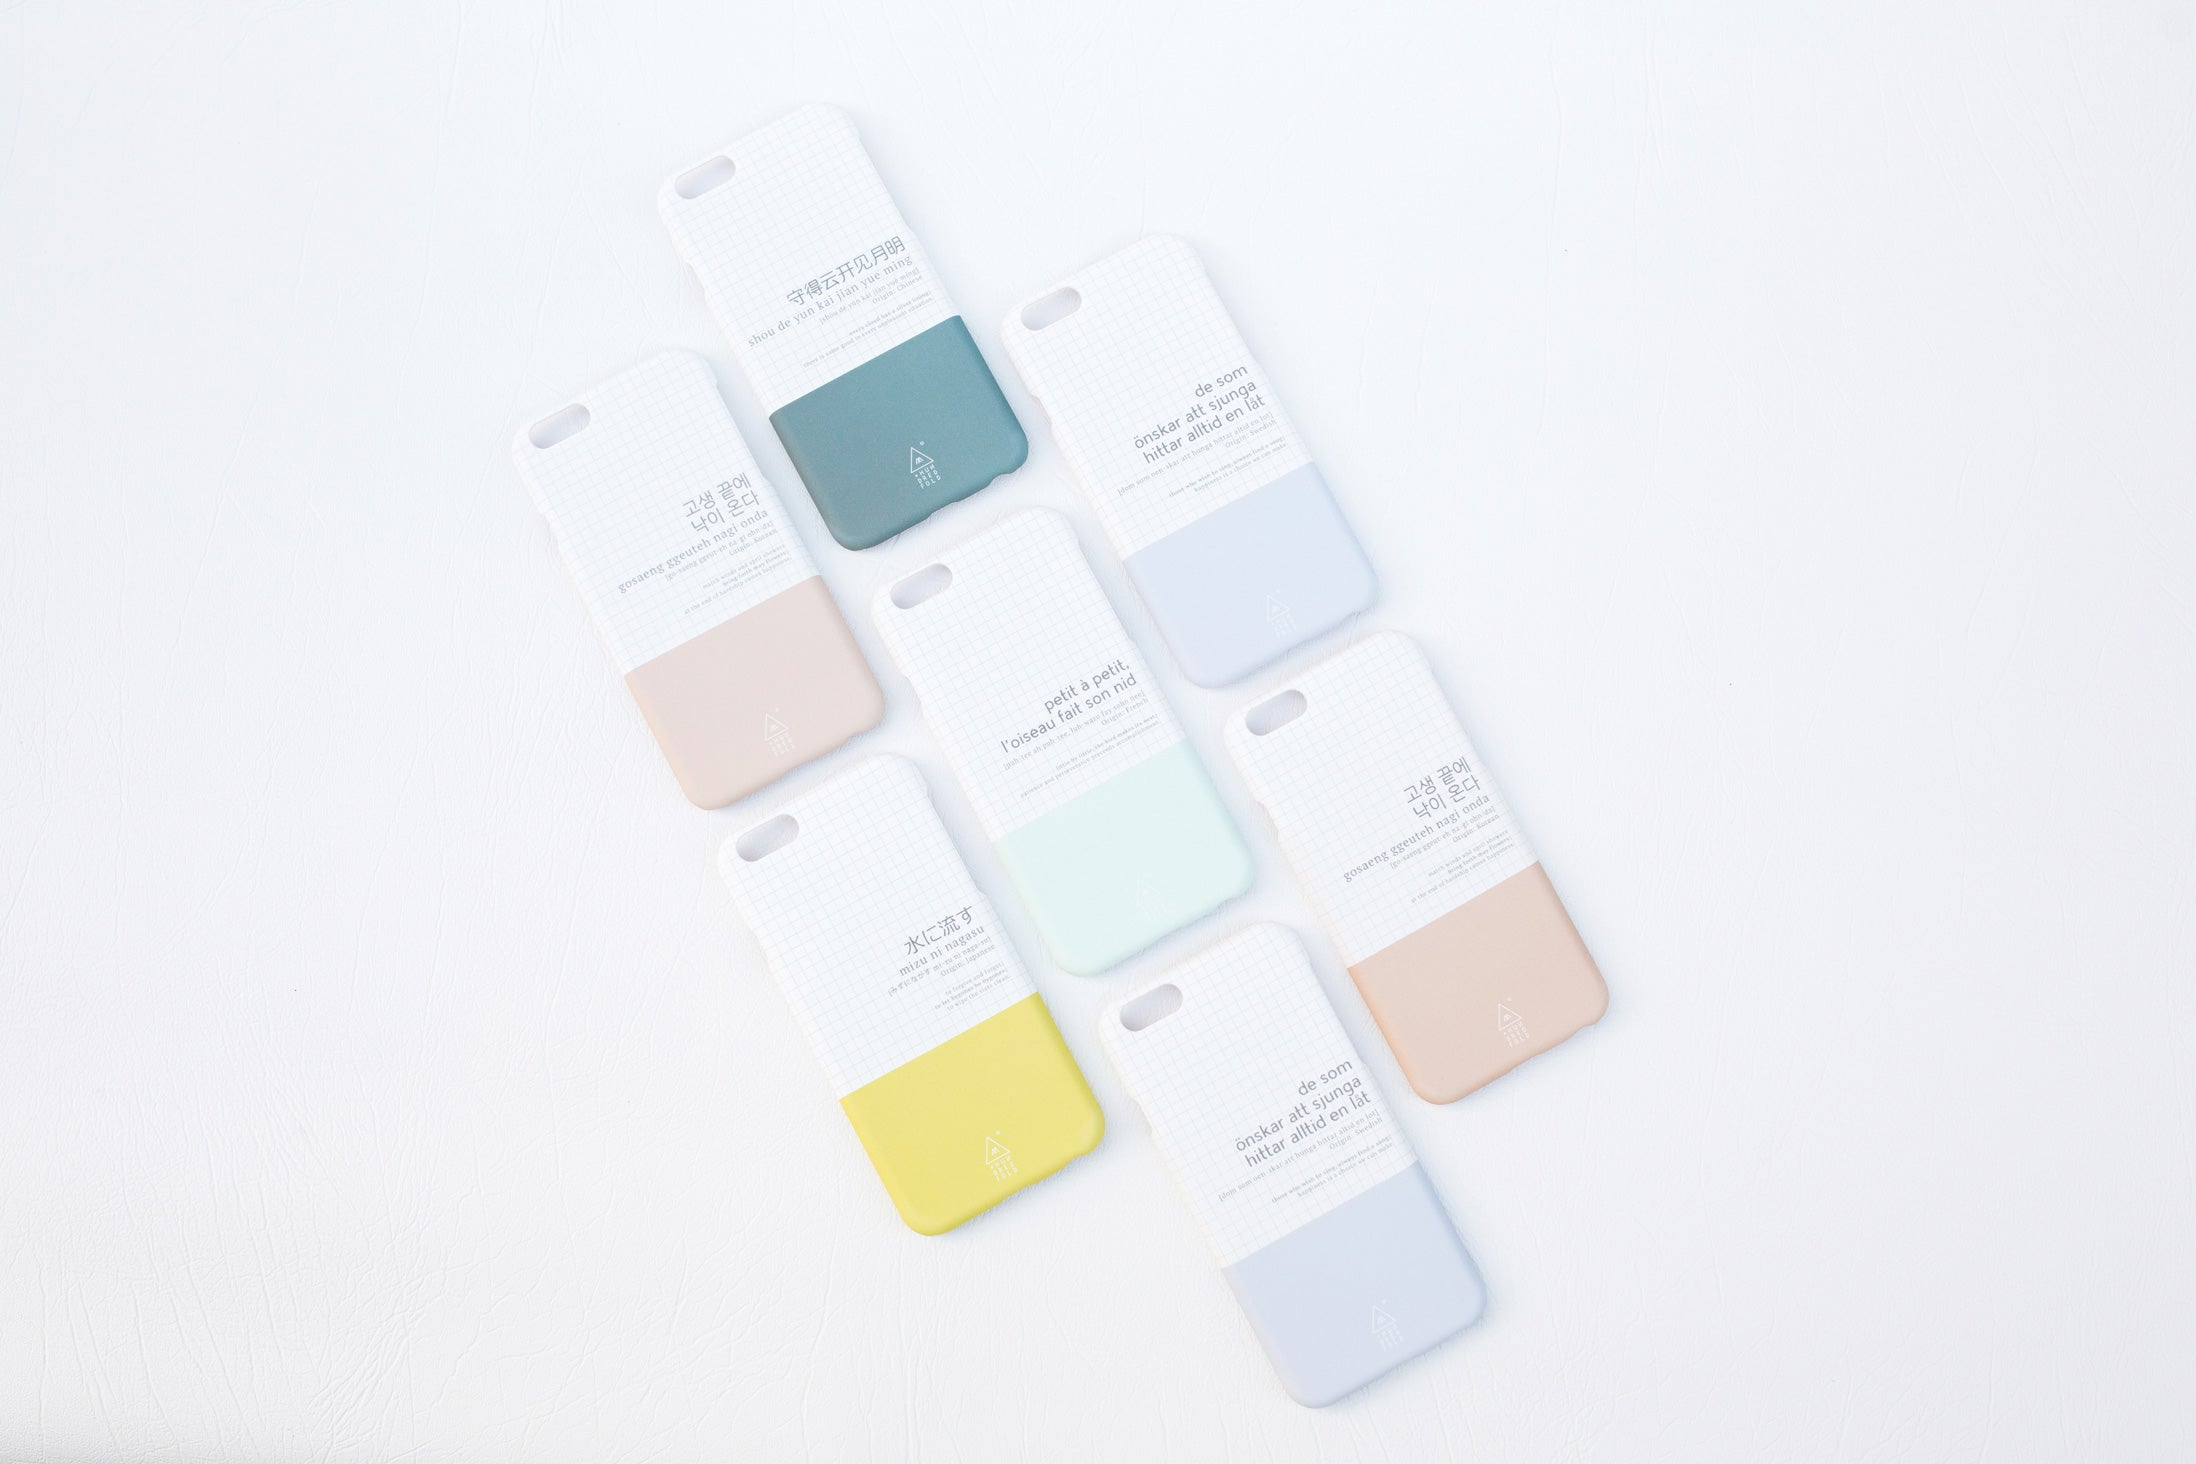 Proverbs Phone Case - Set of 5